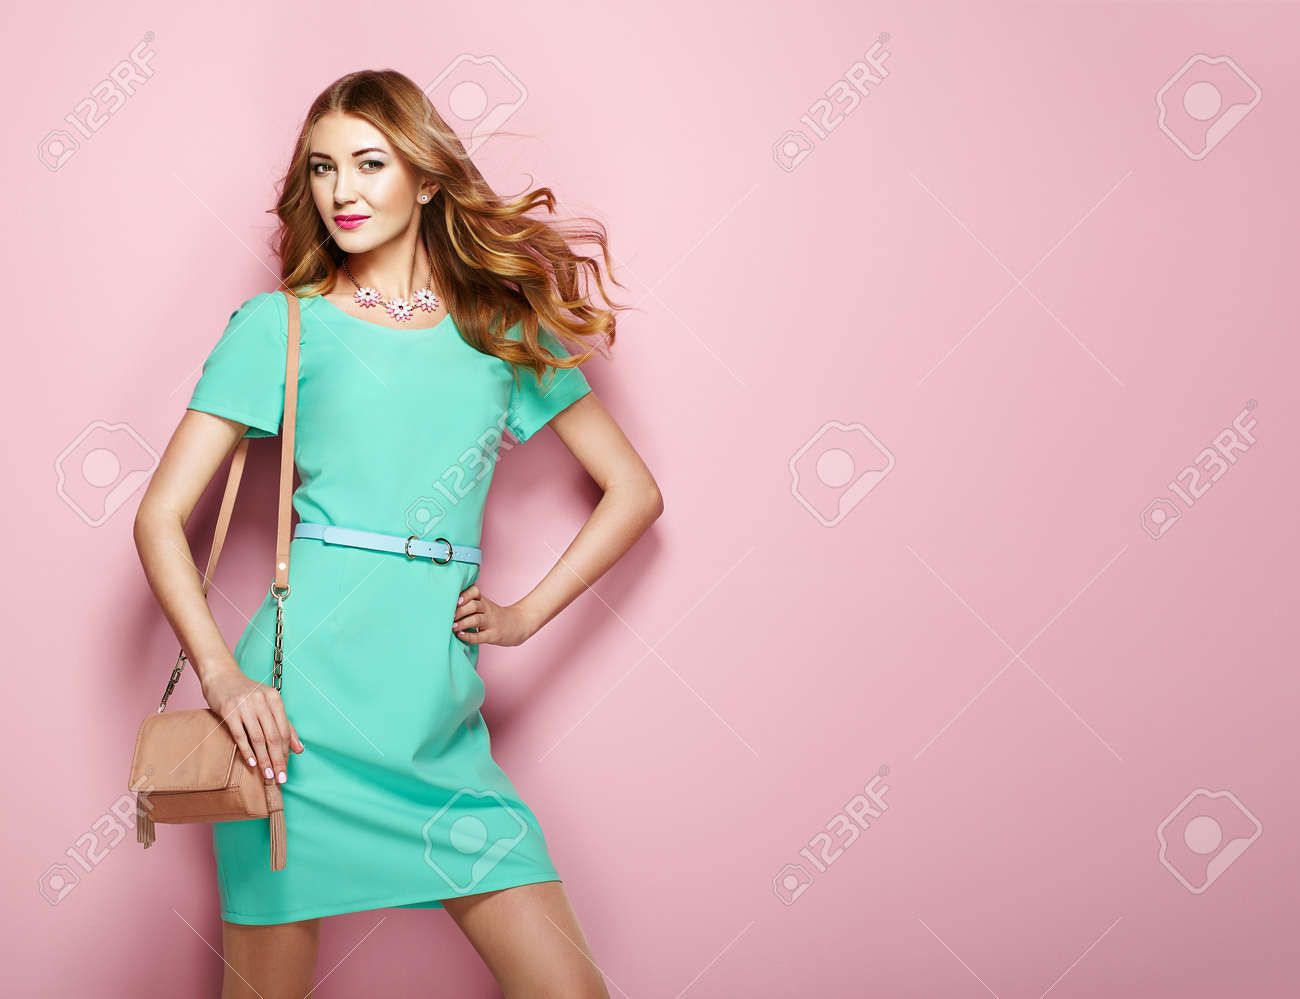 df1f0301928 Blonde young woman in elegant green dress. Girl posing on a pink background.  Jewelry